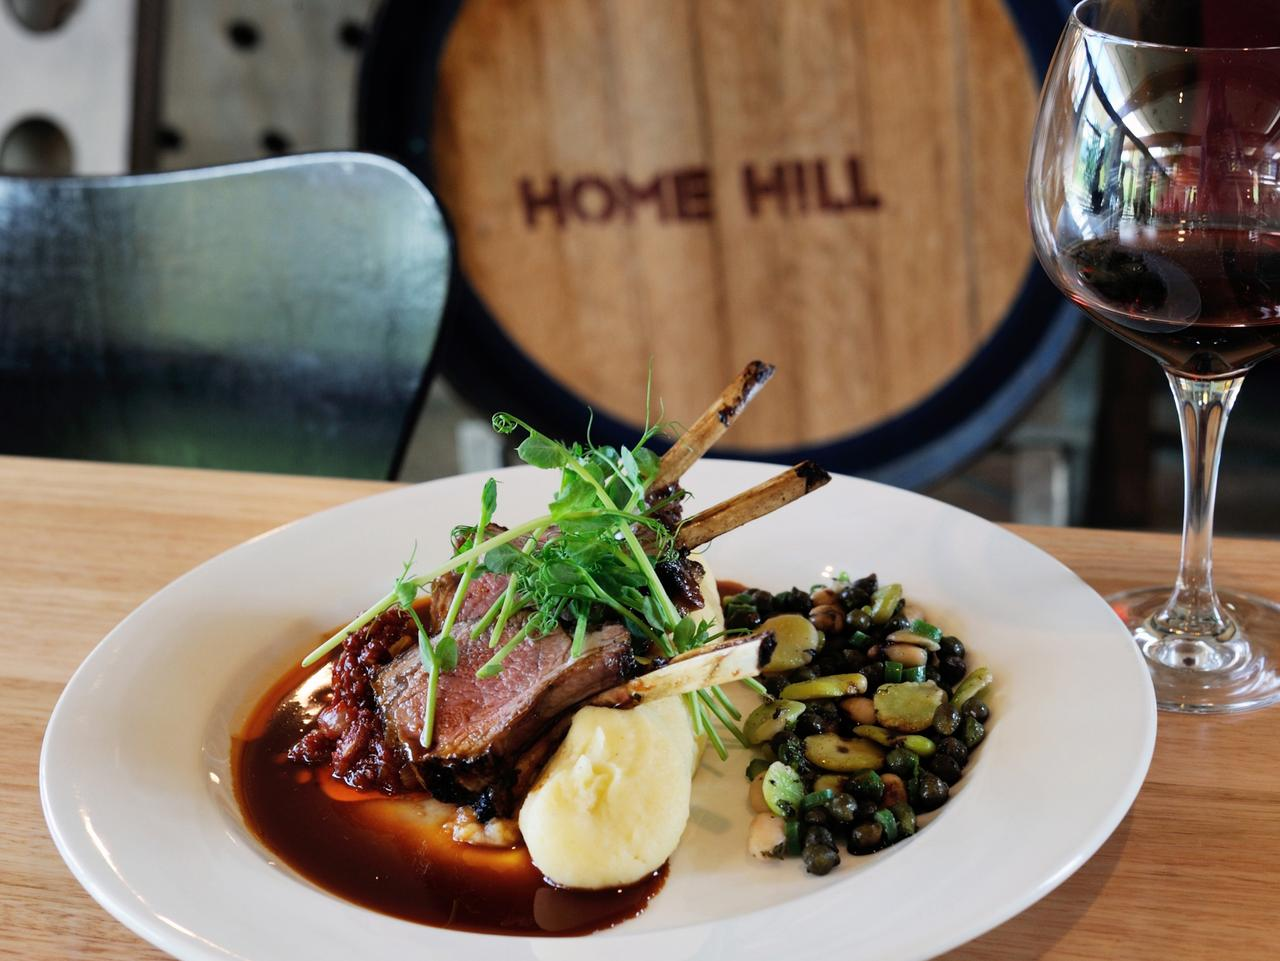 ESCAPE: Huon Valley, Tasmania, Kerry Heaney, Nov 5 - Home Hill Winery. Mandatory credit: Tourism Tasmania and Chris Crerar